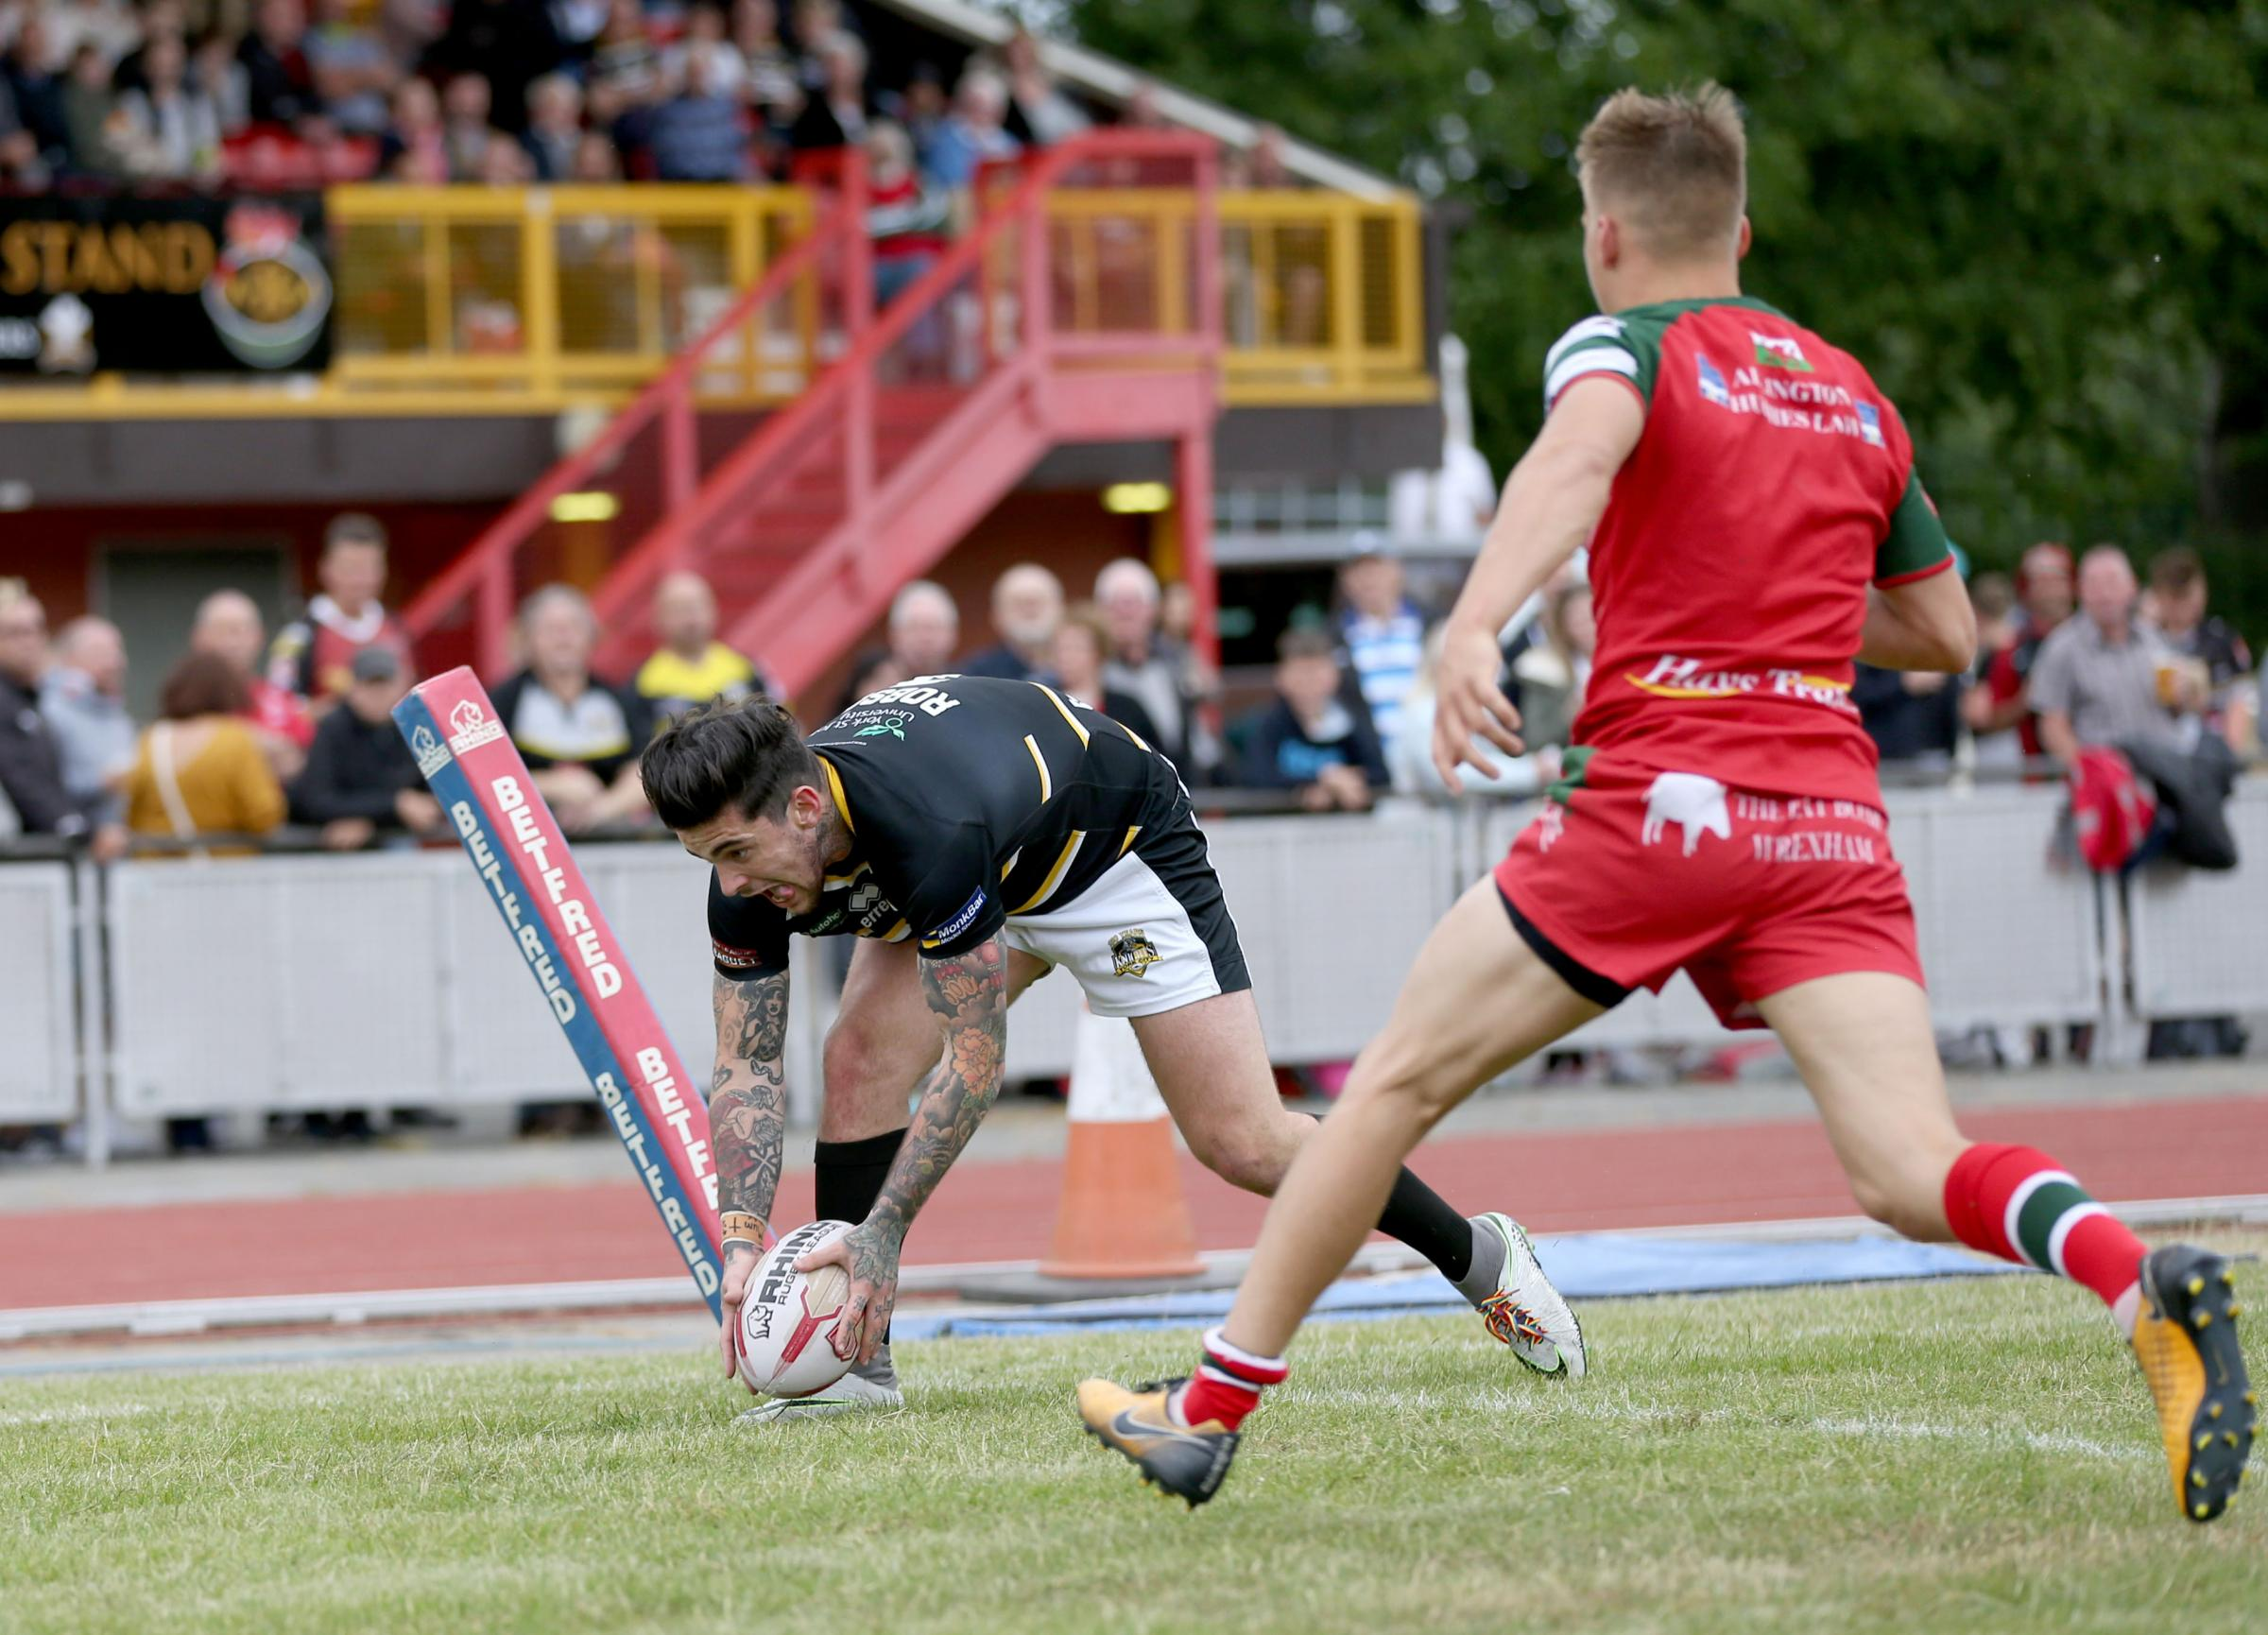 FITNESS TEST: York City Knights try-scorer from last week, Ash Robson, is one of three players injured at North Wales Crusaders who has been named in a provisional 20-man squad who will be assessed before tomorrow's match at Keighley Cougars. Picture: